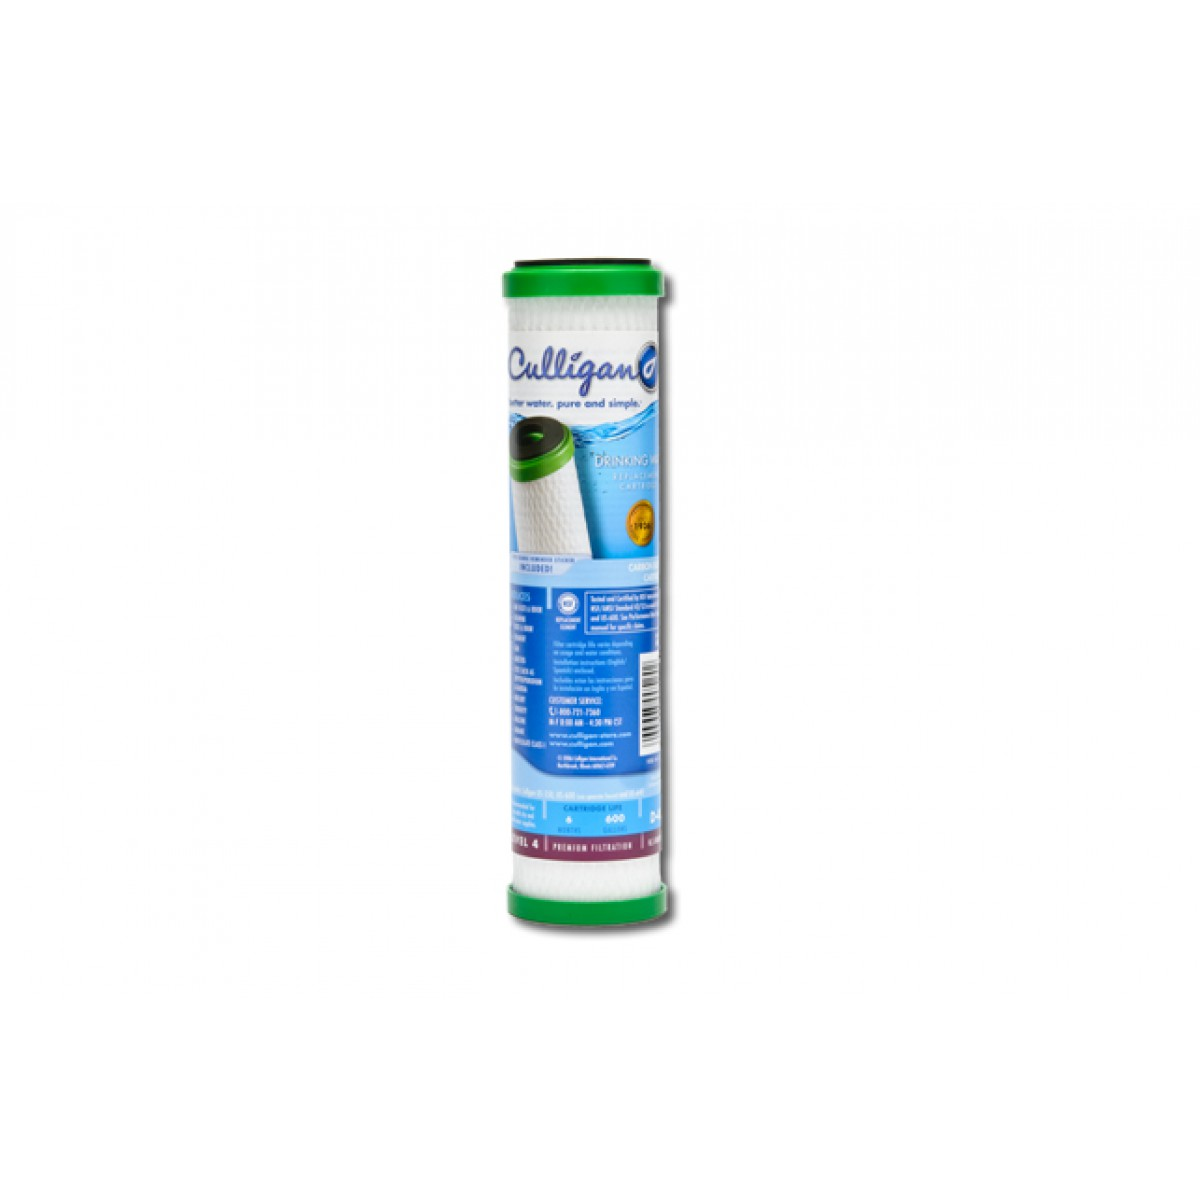 D 40 Culligan Level 4 Undersink Filter Replacement Cartridge